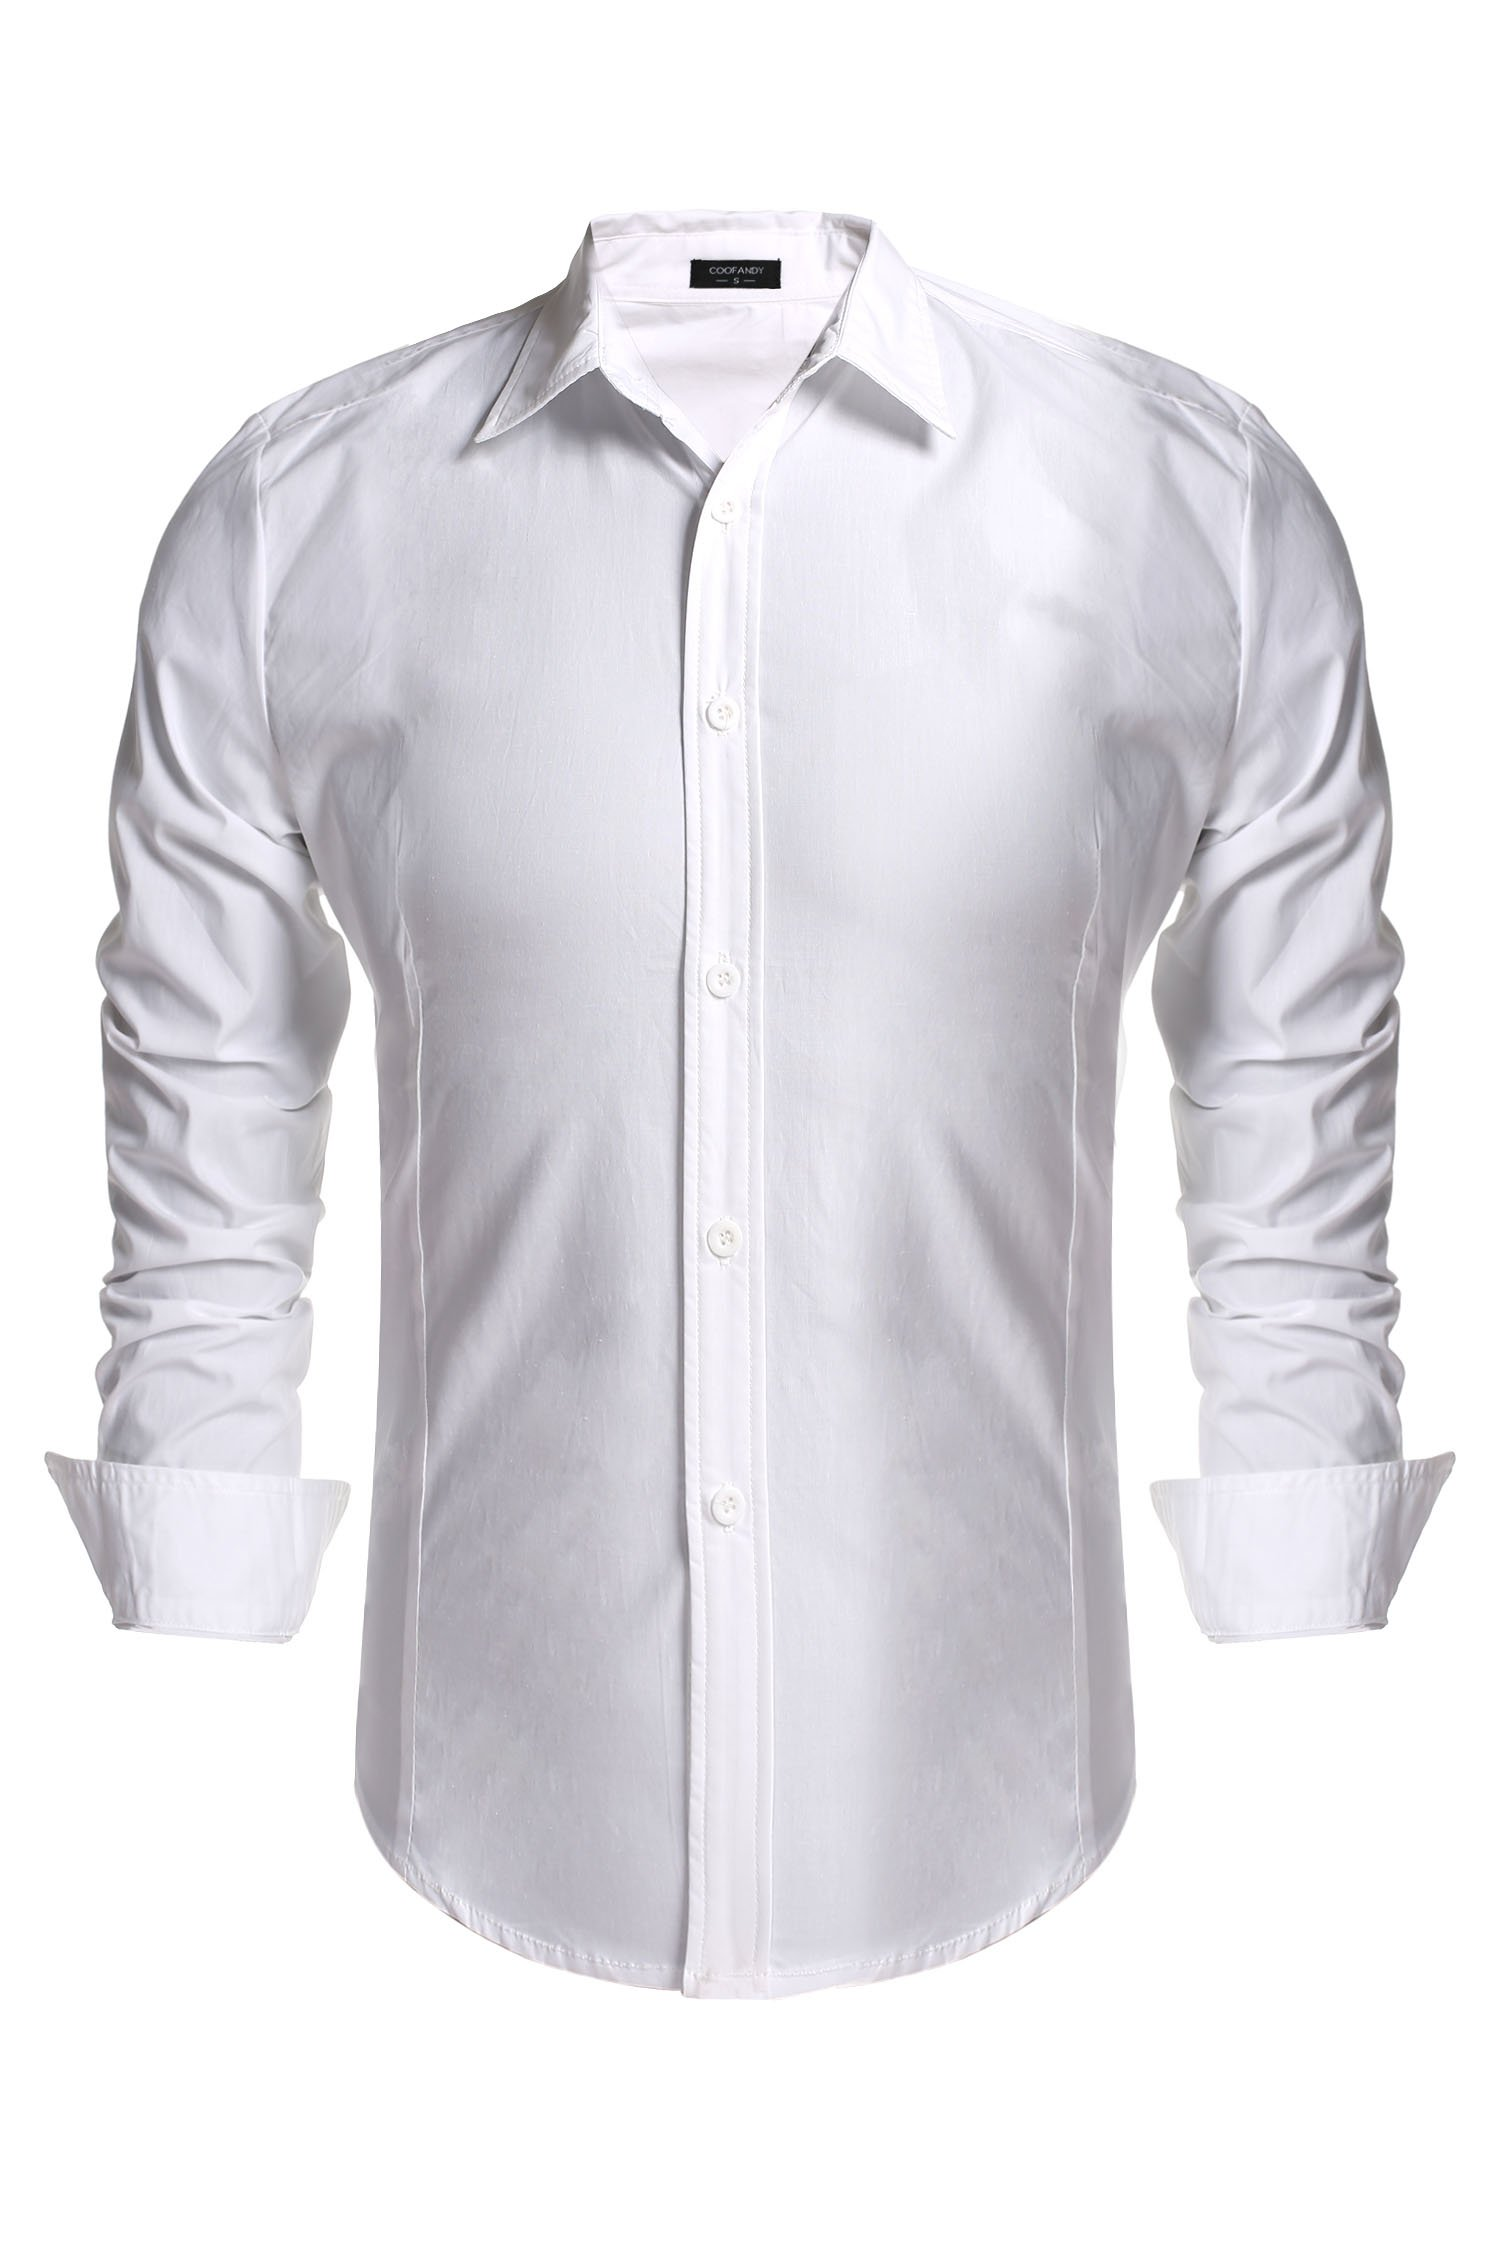 Gotchicon Mens Long Sleeve Dress Shirts Slim Fit Shirts for Men,White,Small